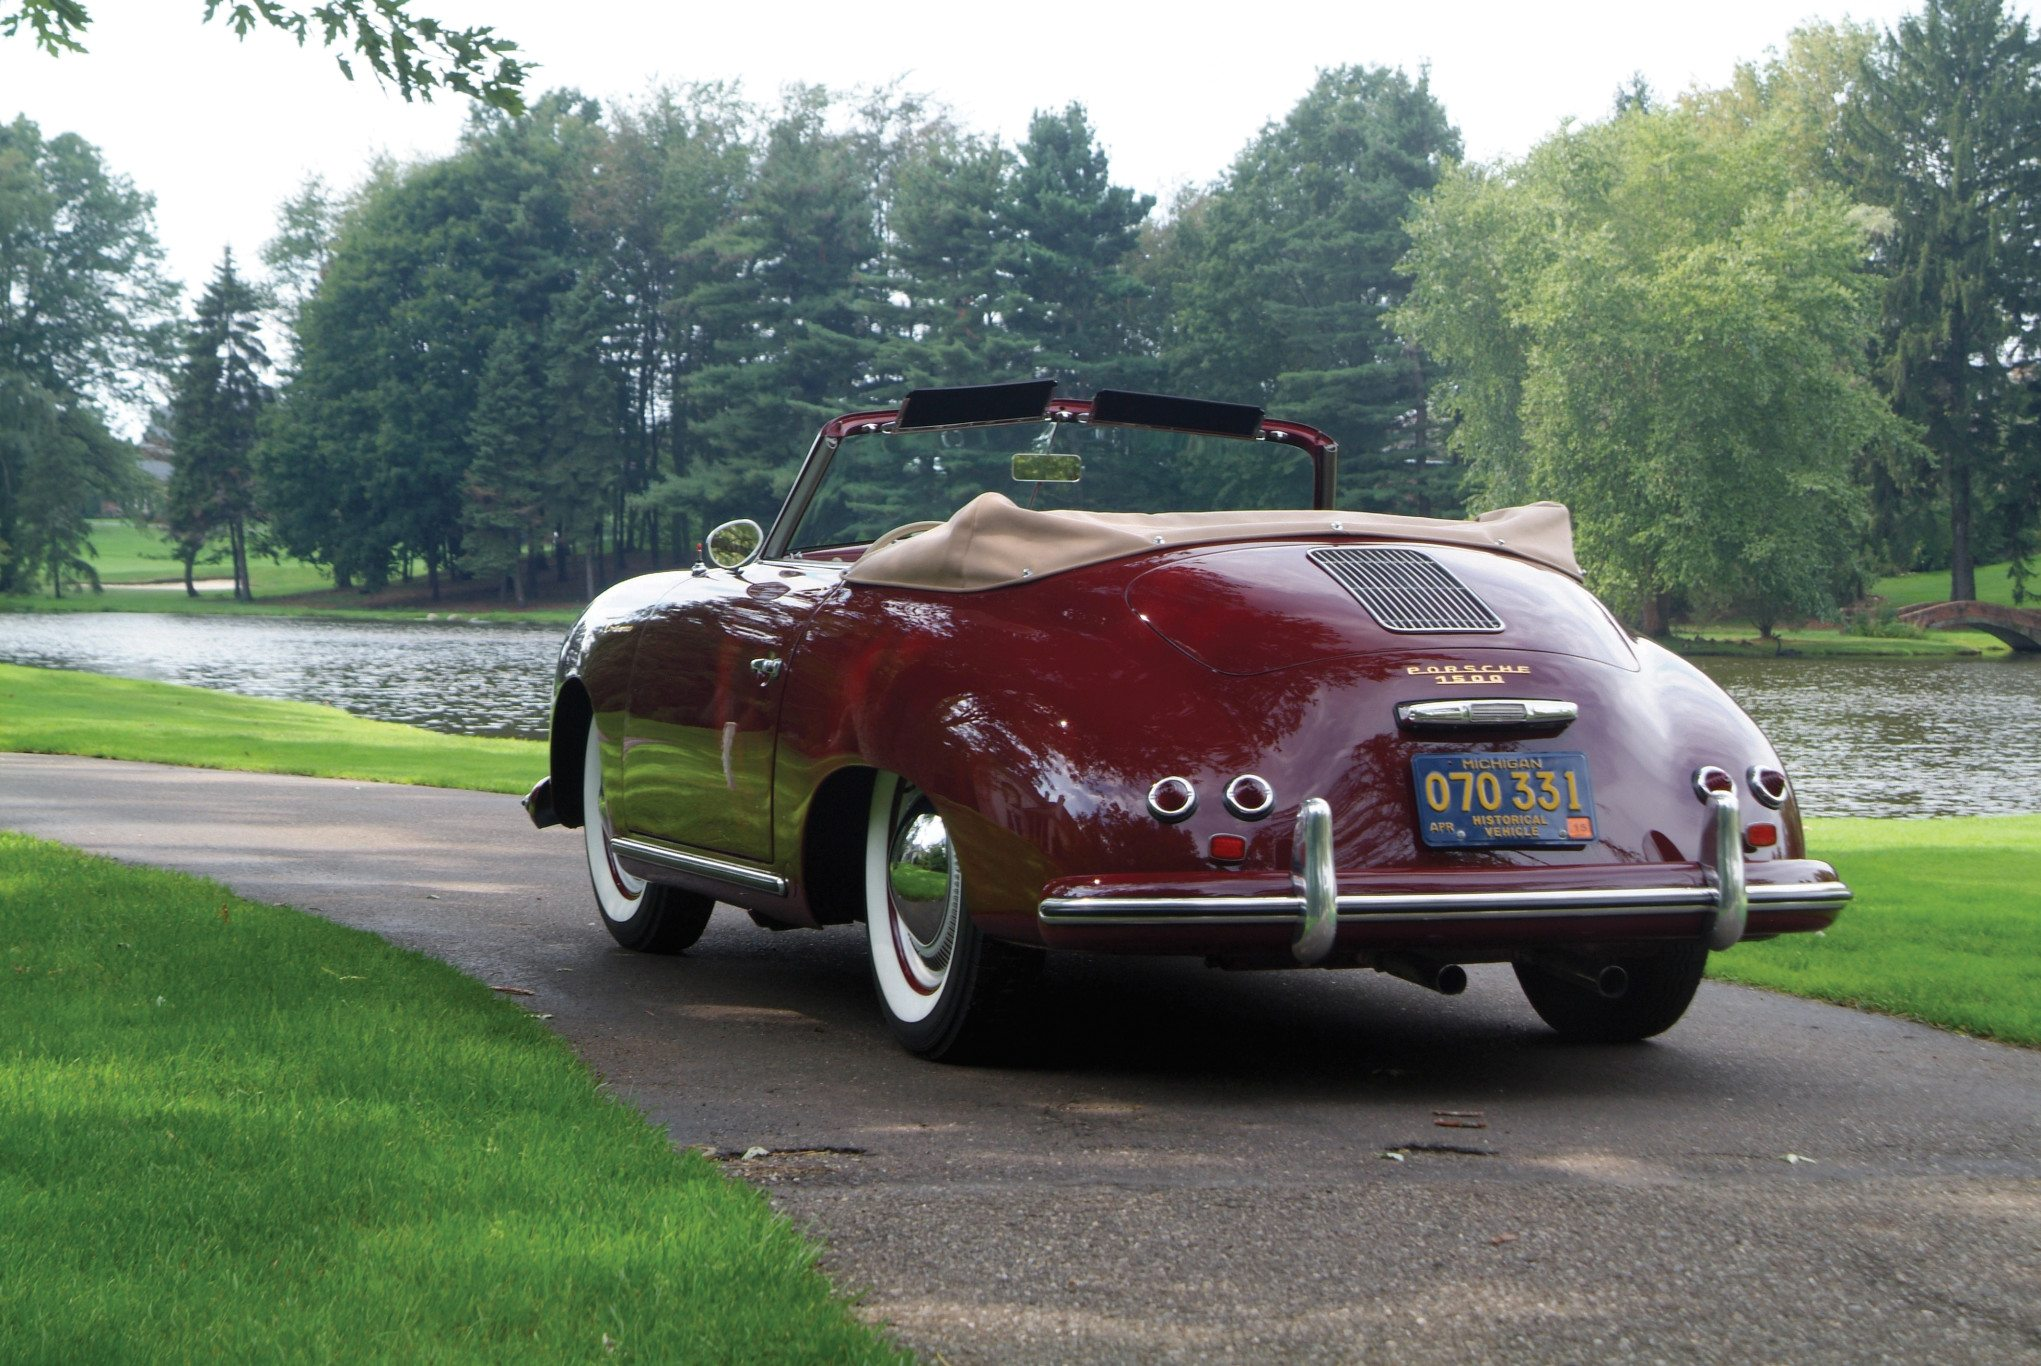 Porsche 356 Continental Rear View